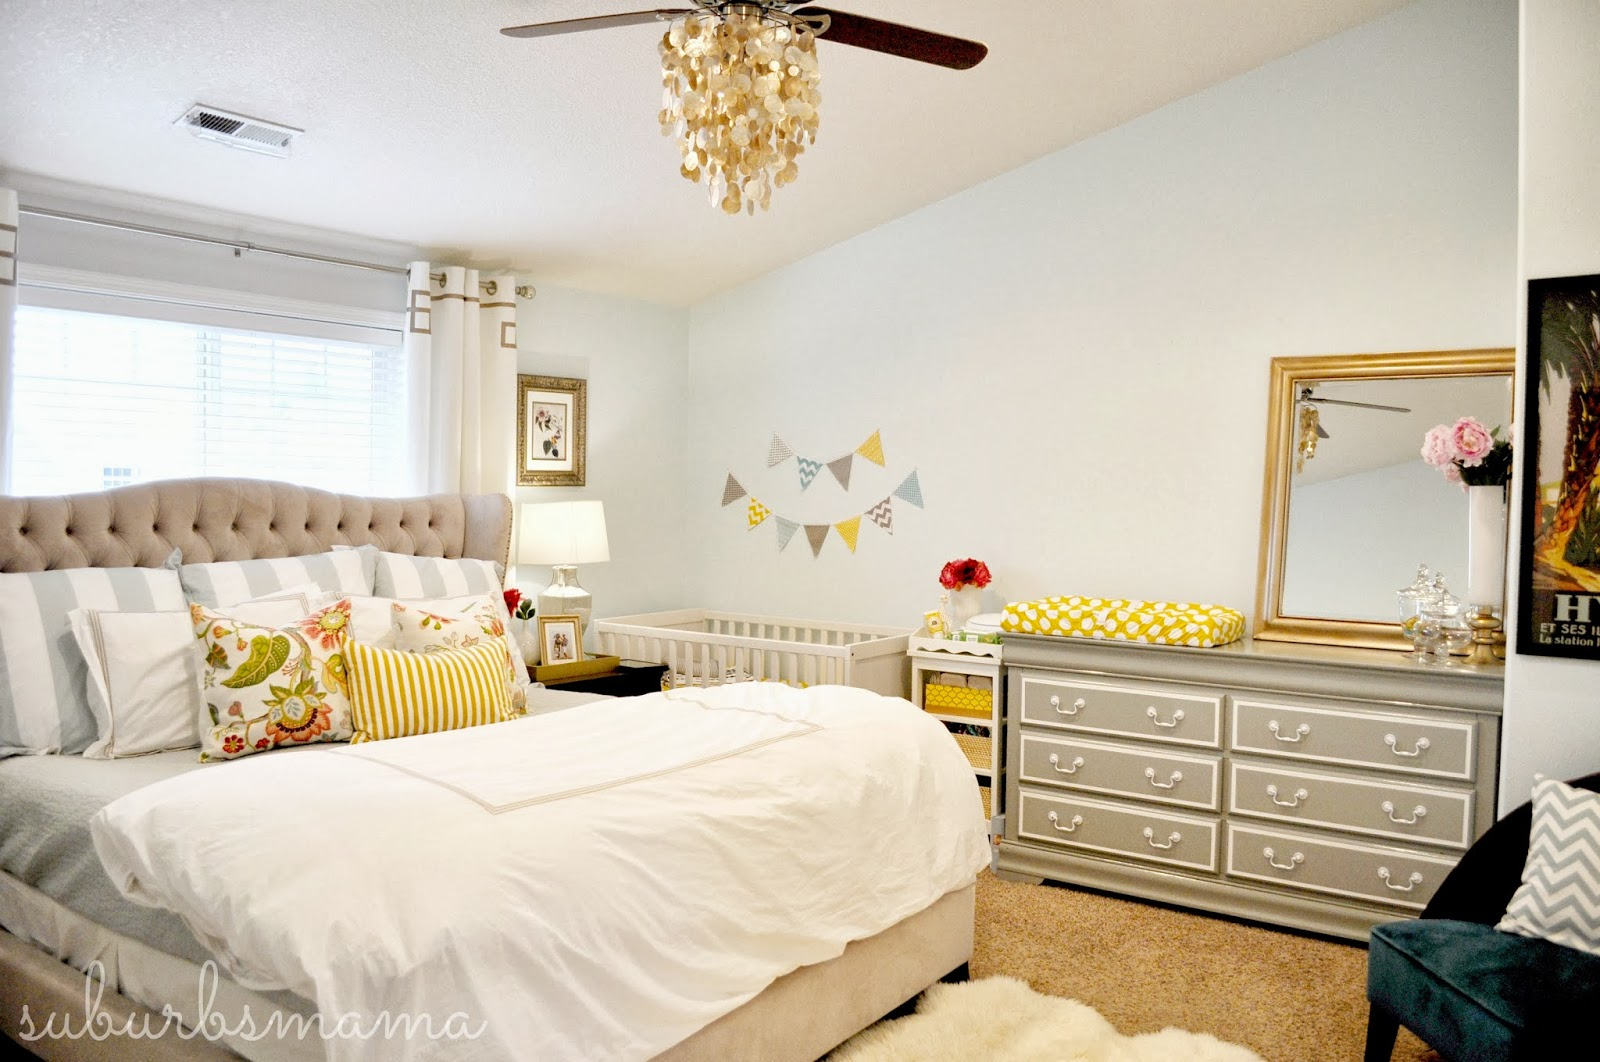 Suburbs mama nursery in master bedroom Master bedroom plus nursery